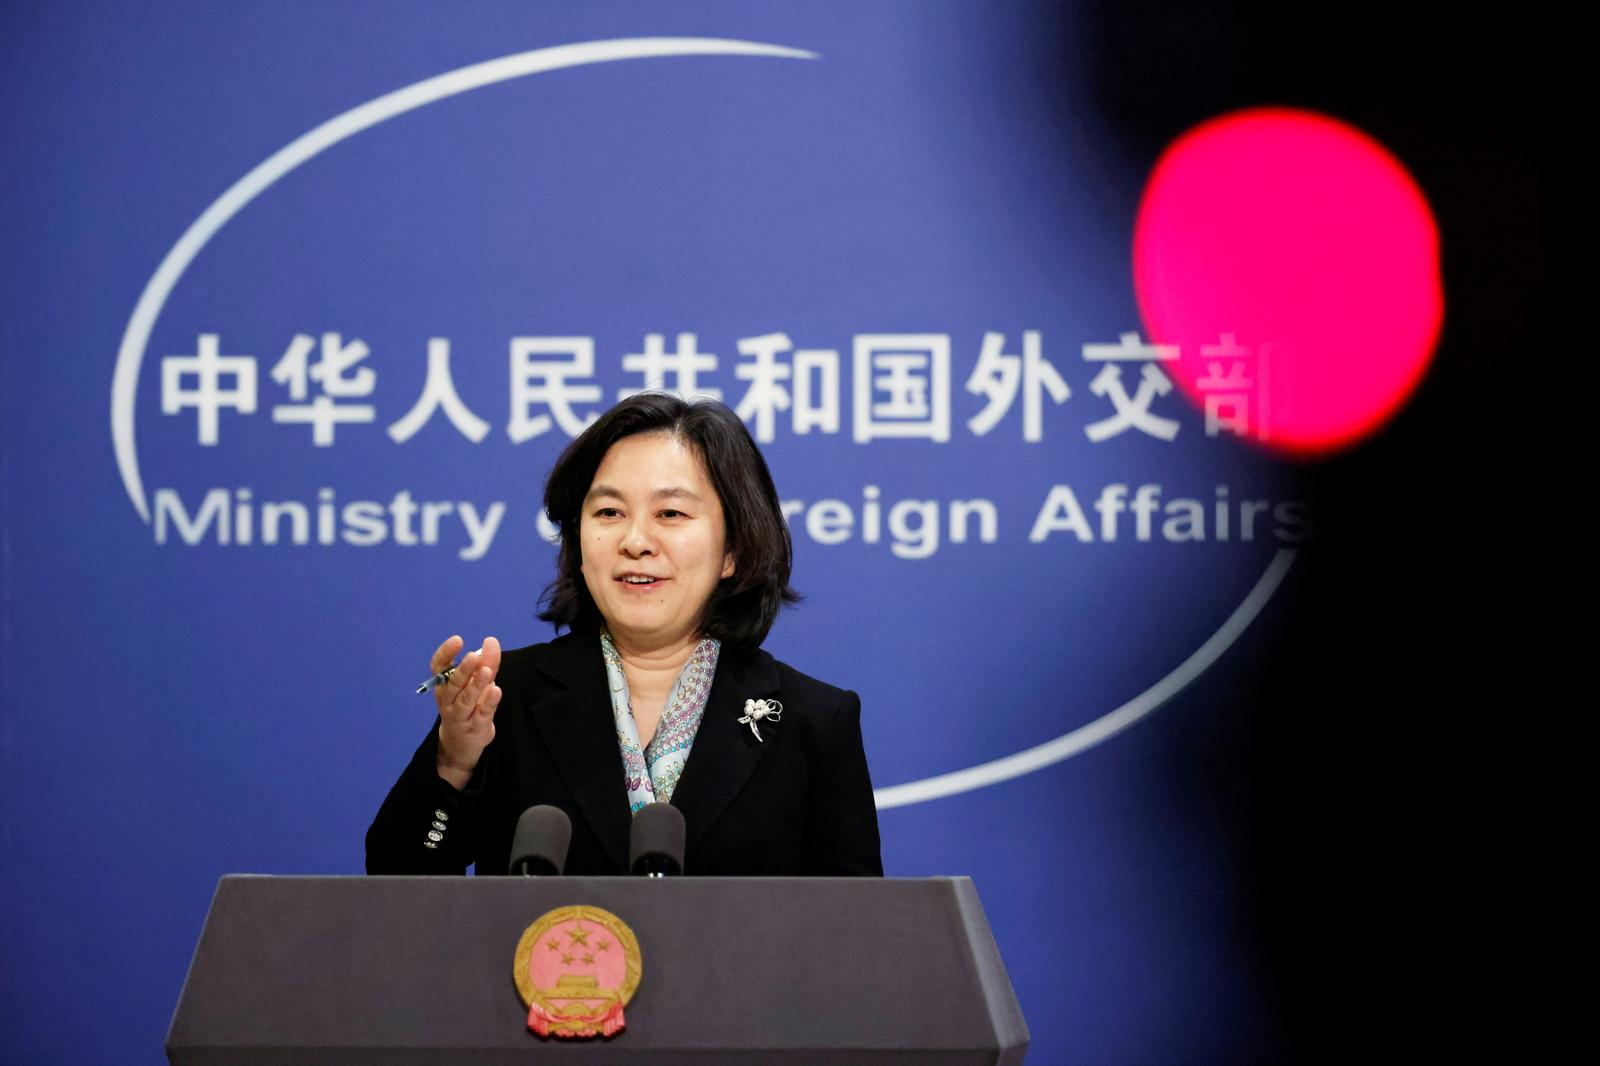 Chinese Foreign Ministry spokeswoman Hua Chunying holds a news conference in Beijing, China, November 30, 2020. Photo: Reuters